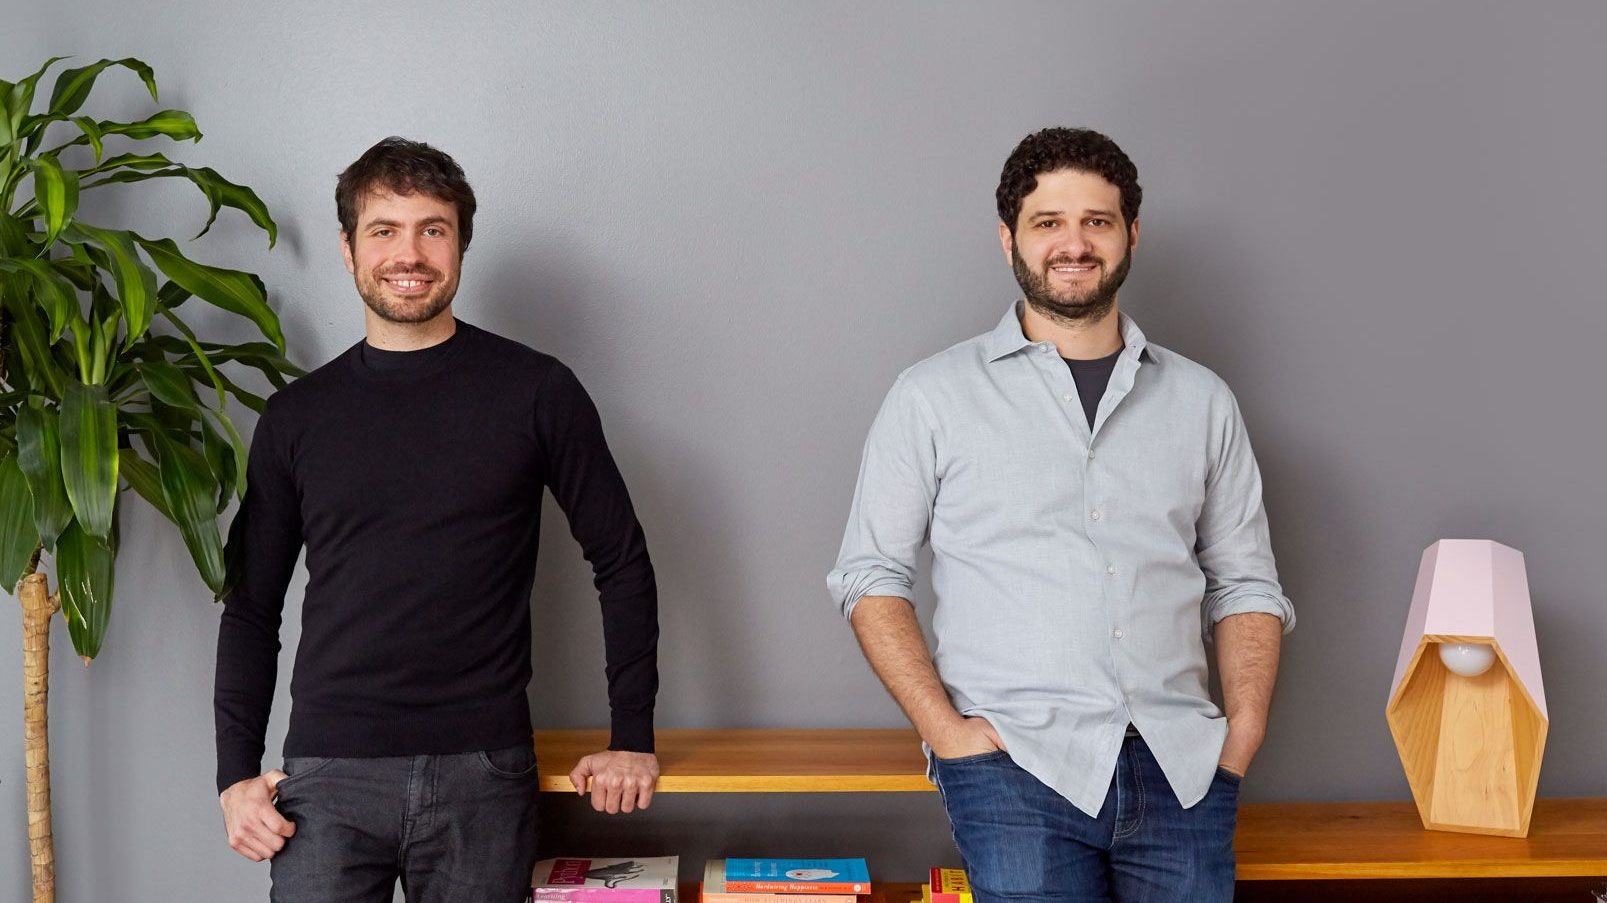 Two Facebook engineers made a tool to cut down on meetings. Now it's a $900 million company